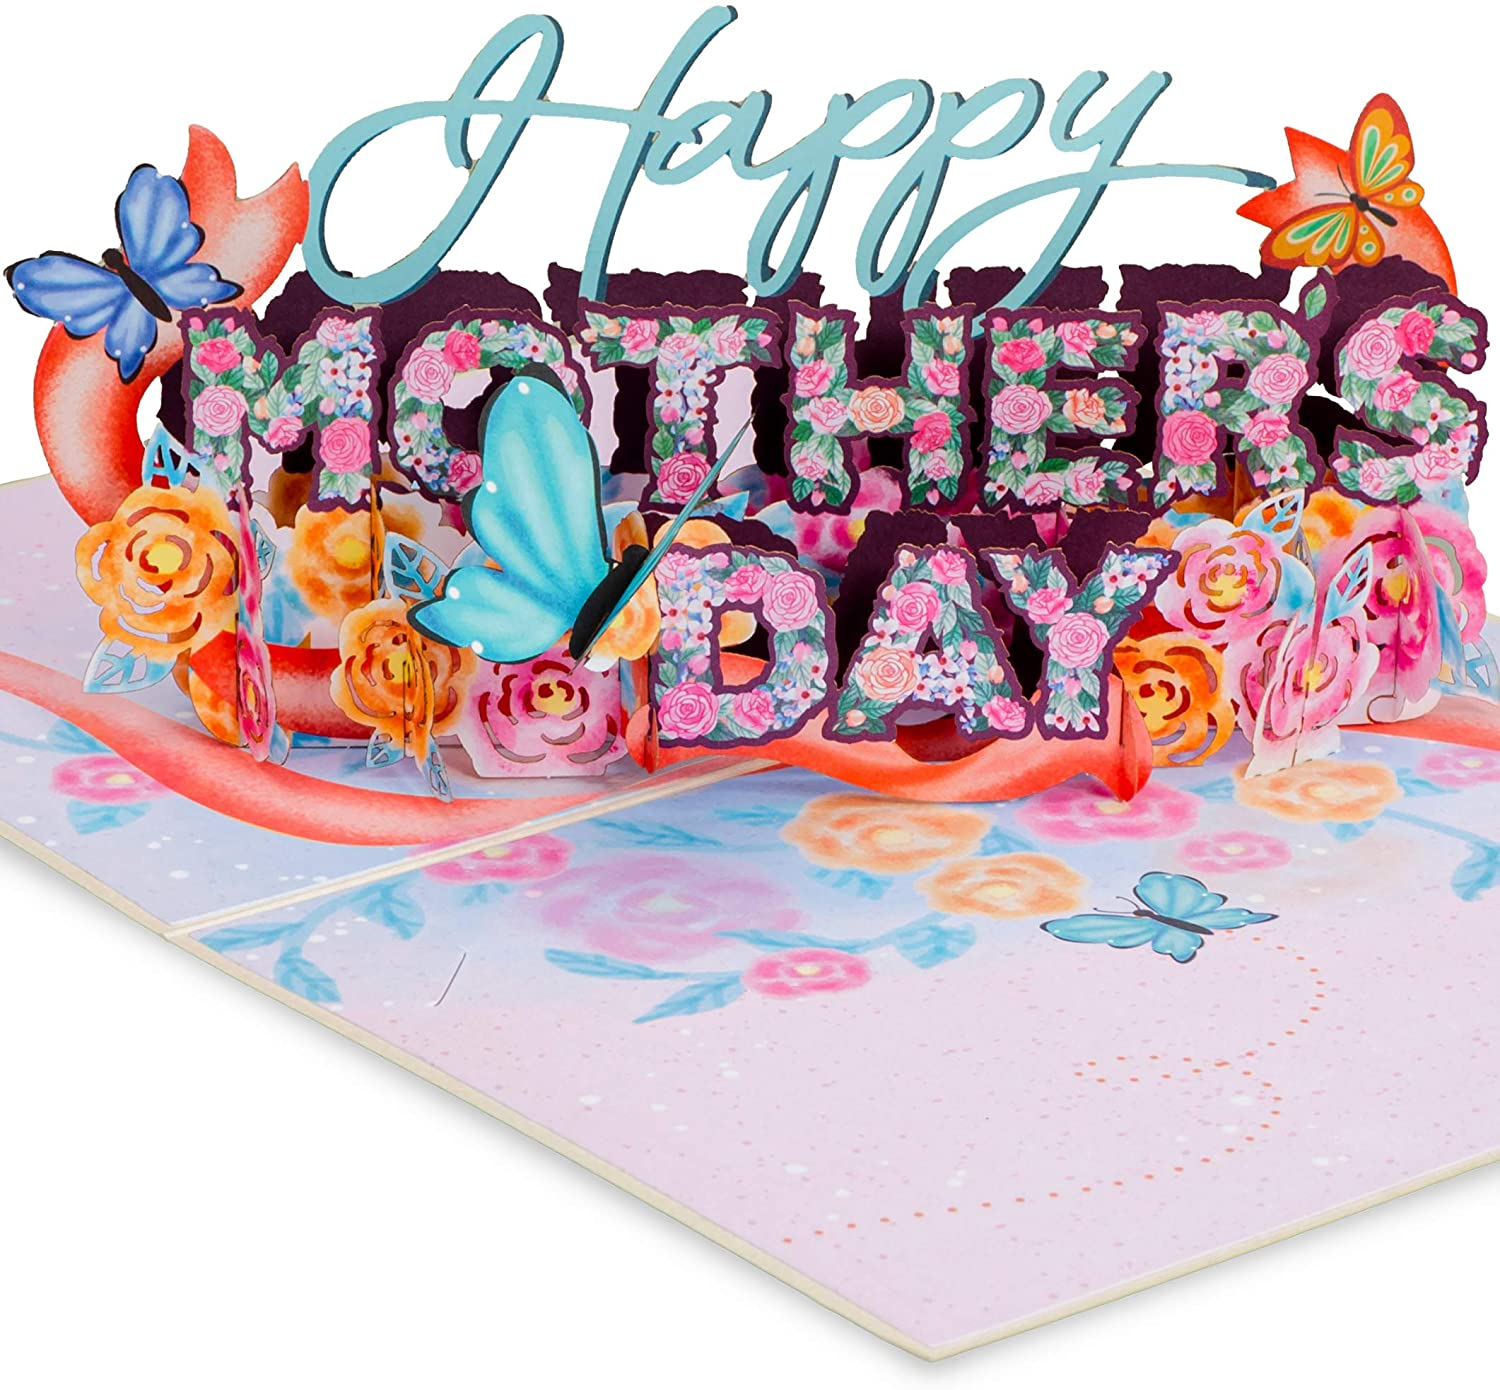 Paper Love Happy Mothers Day Pop Up Card mother day wishing card 2021